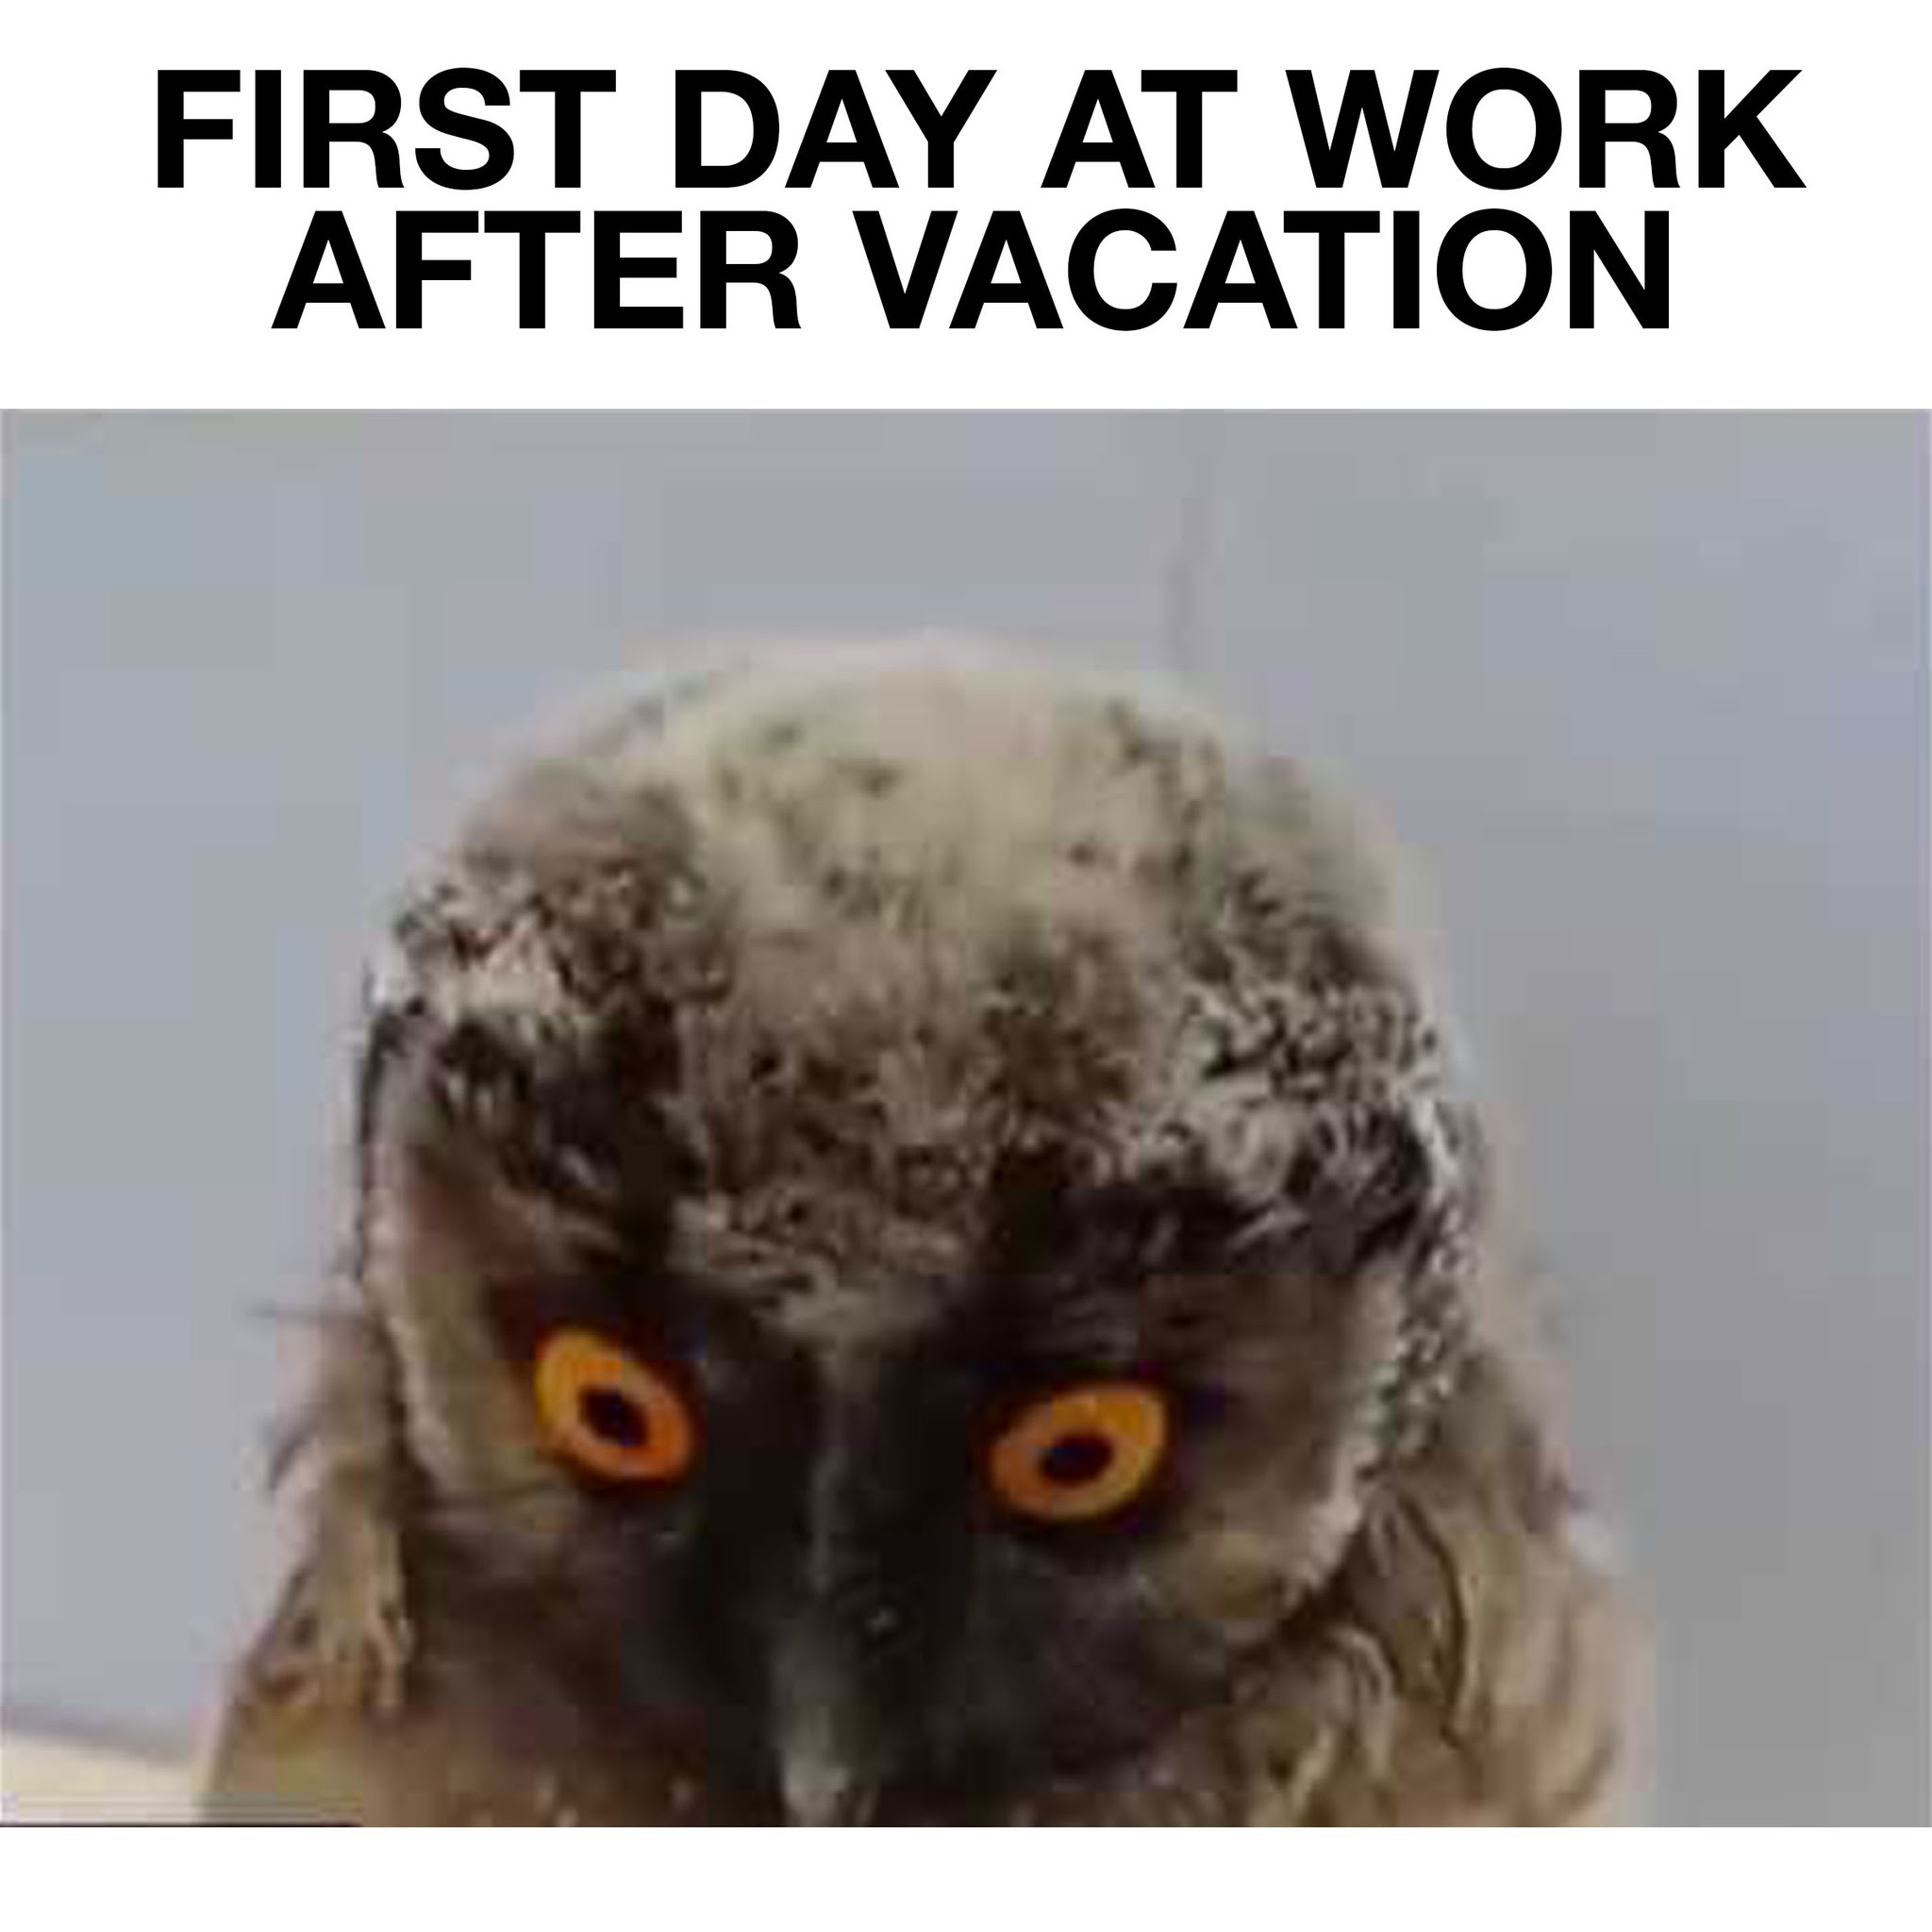 Quotes about Work after vacation (19 quotes)